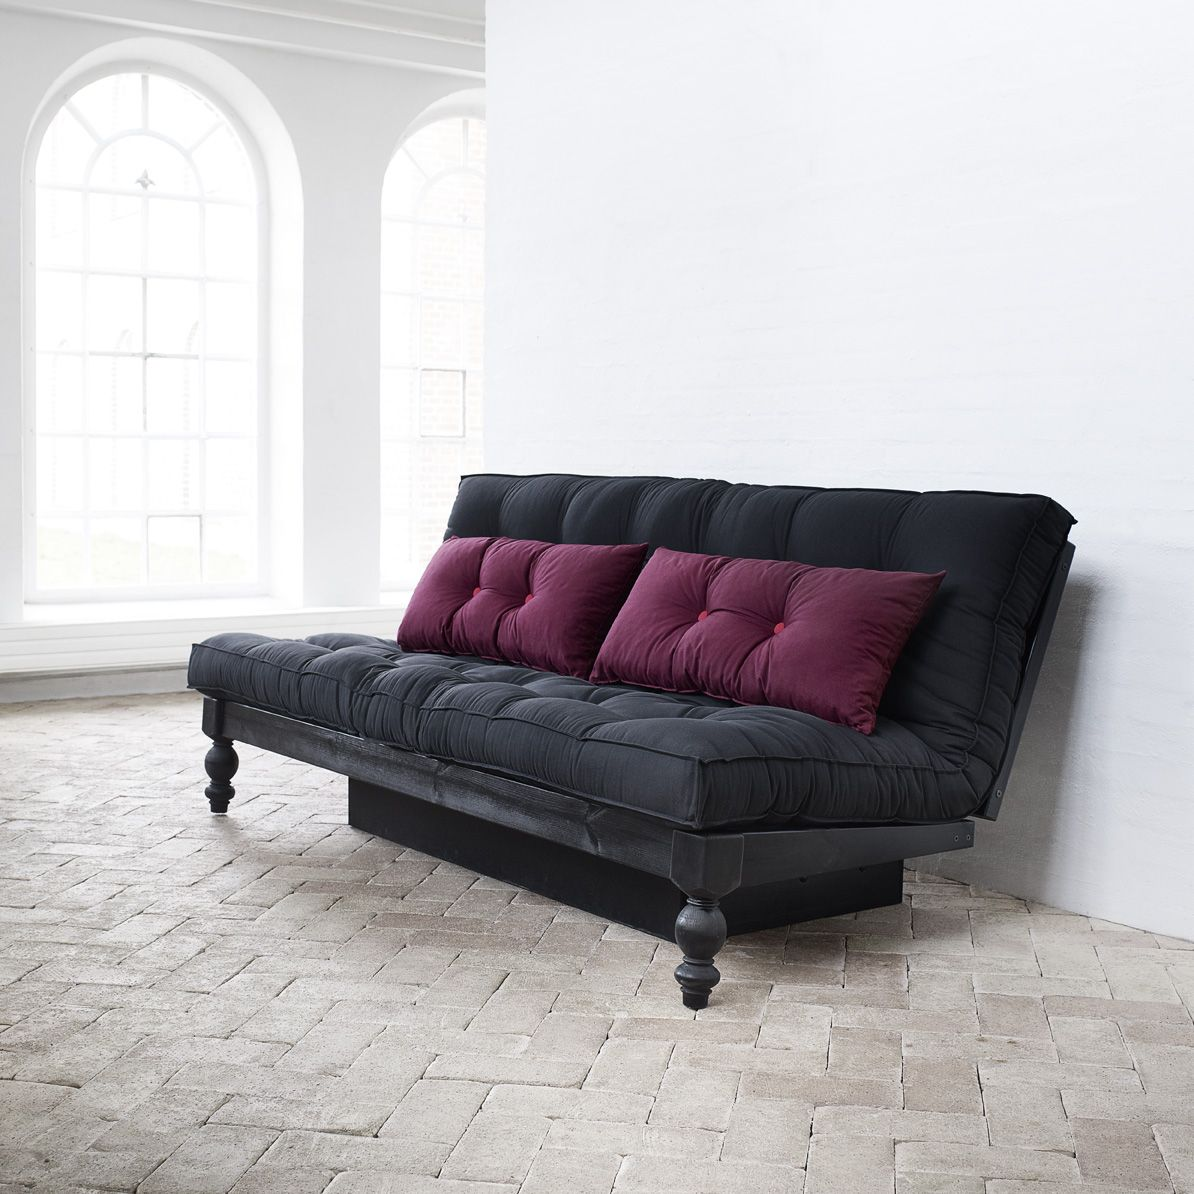 rocko futonb ddsoffa fr n karup rocko futon sofa bed from. Black Bedroom Furniture Sets. Home Design Ideas